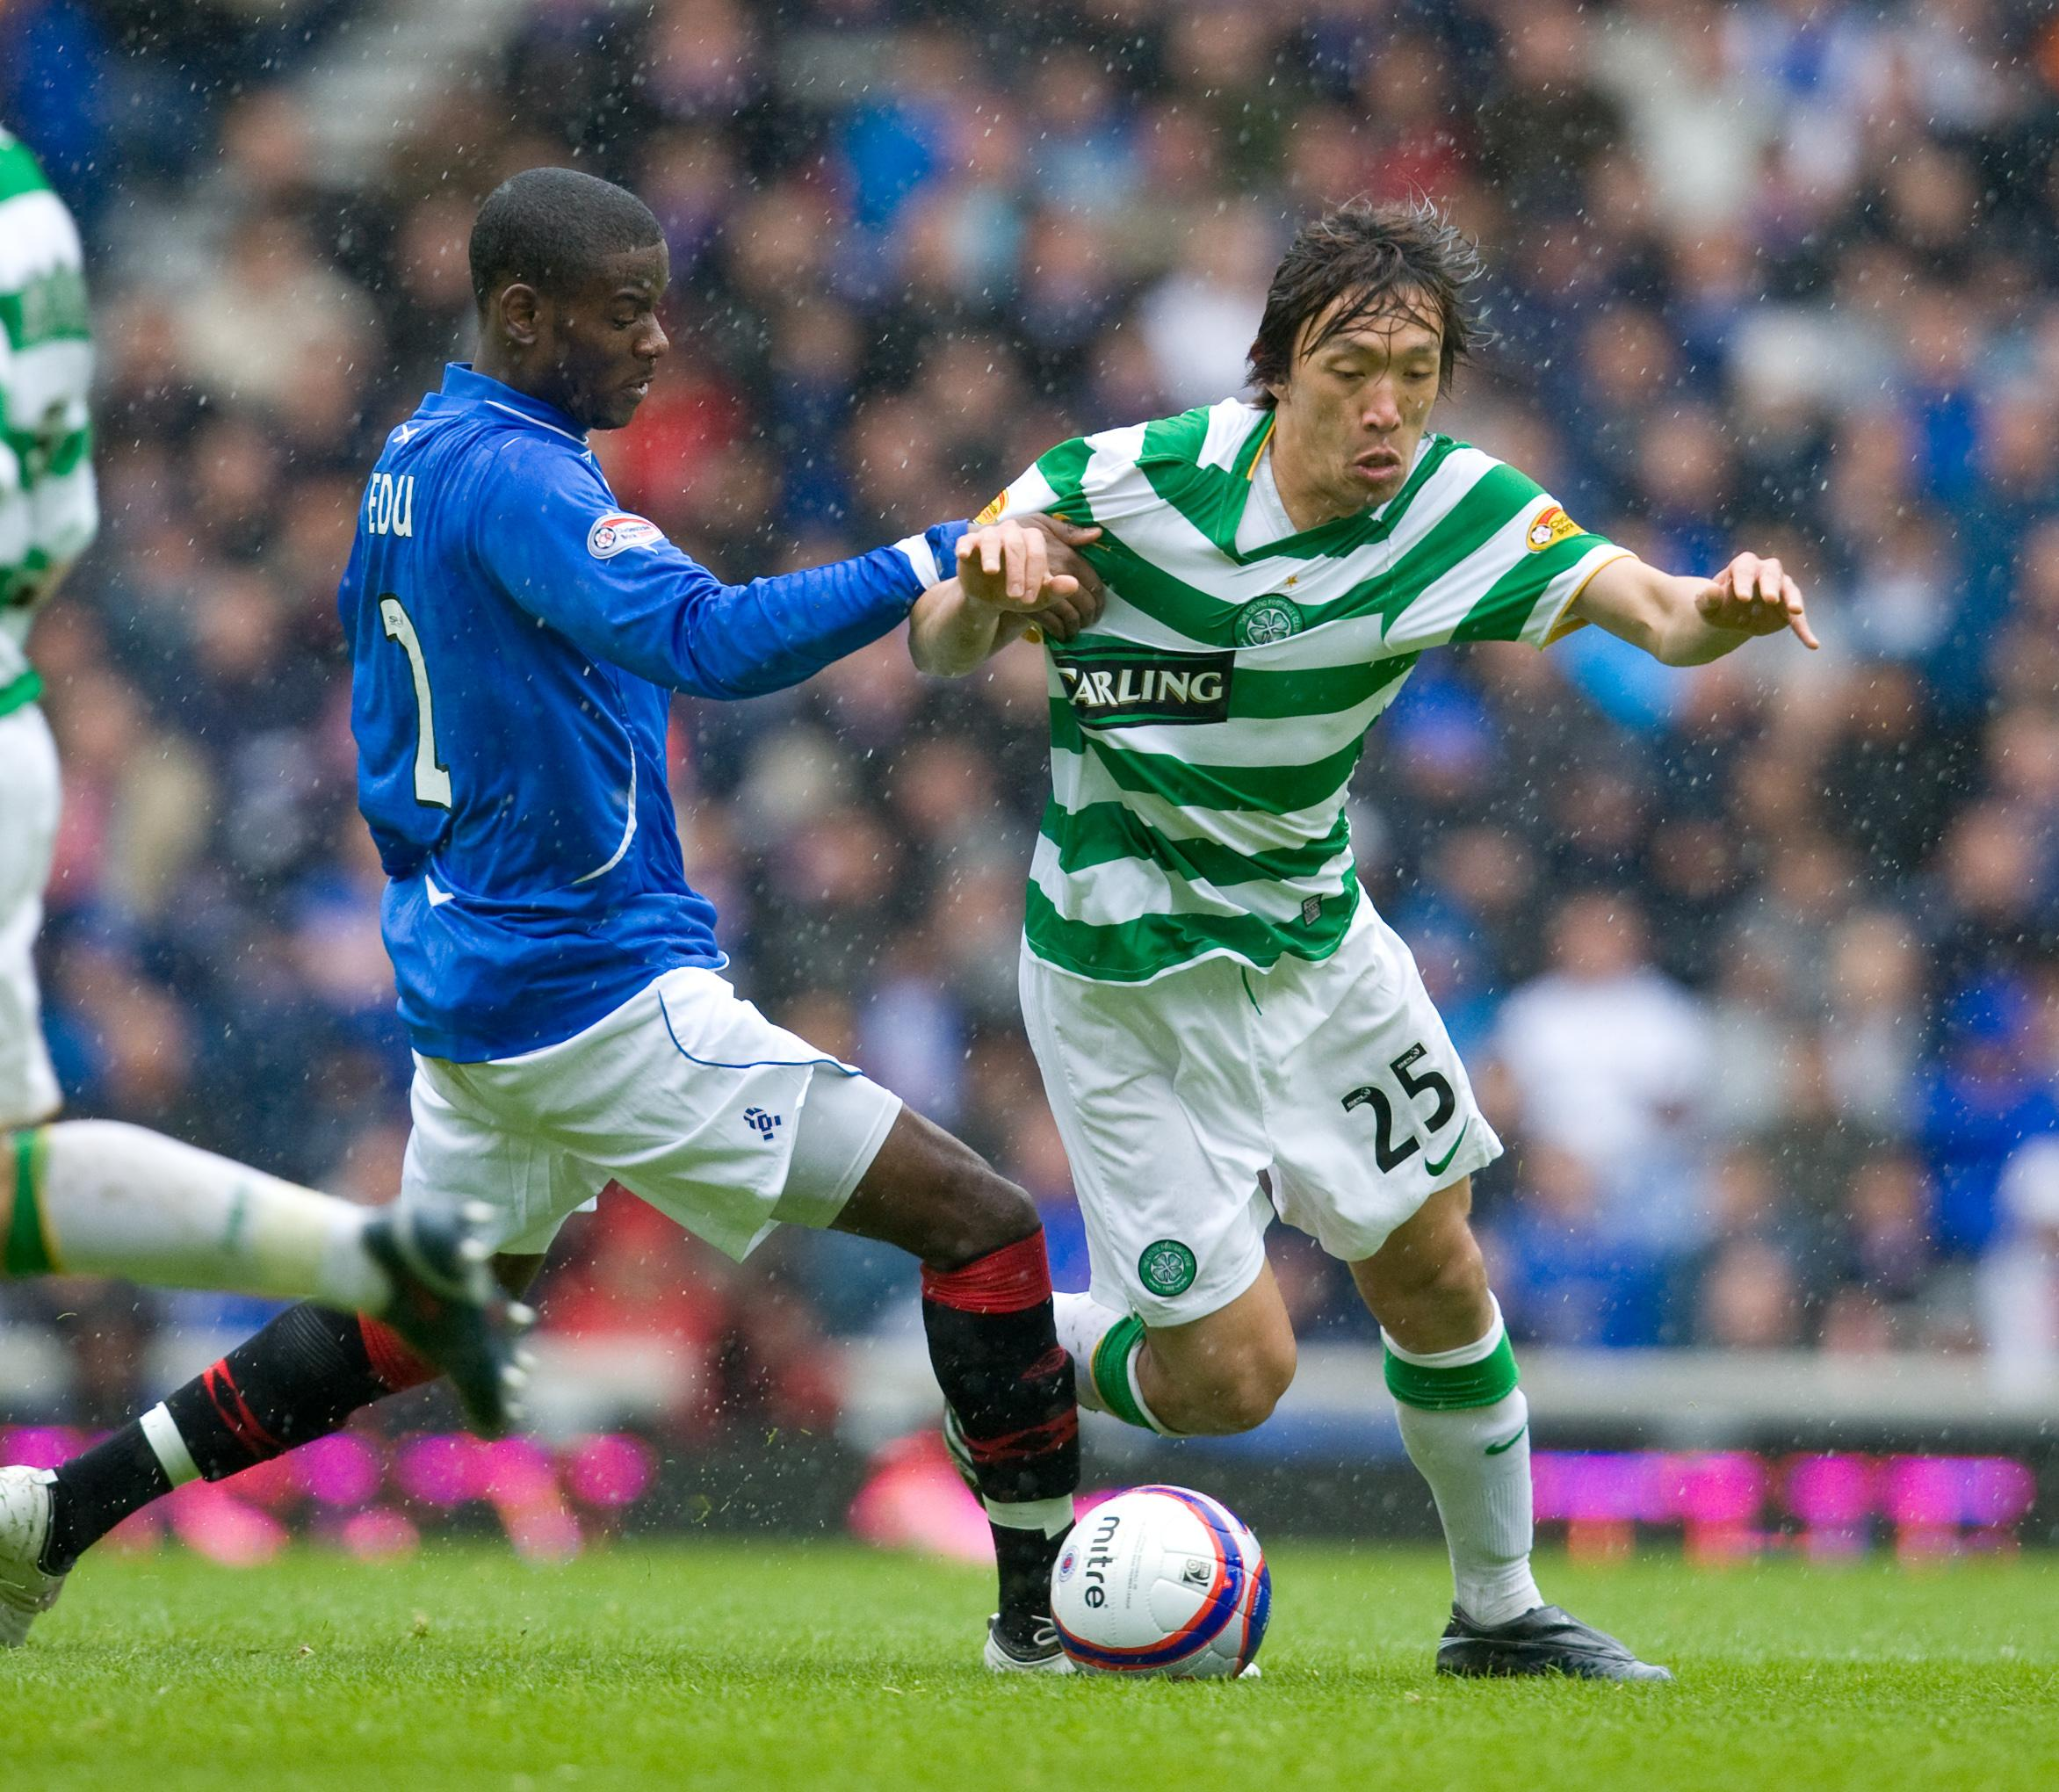 He played in numerous Old Firm derbies and lived to tell the tale